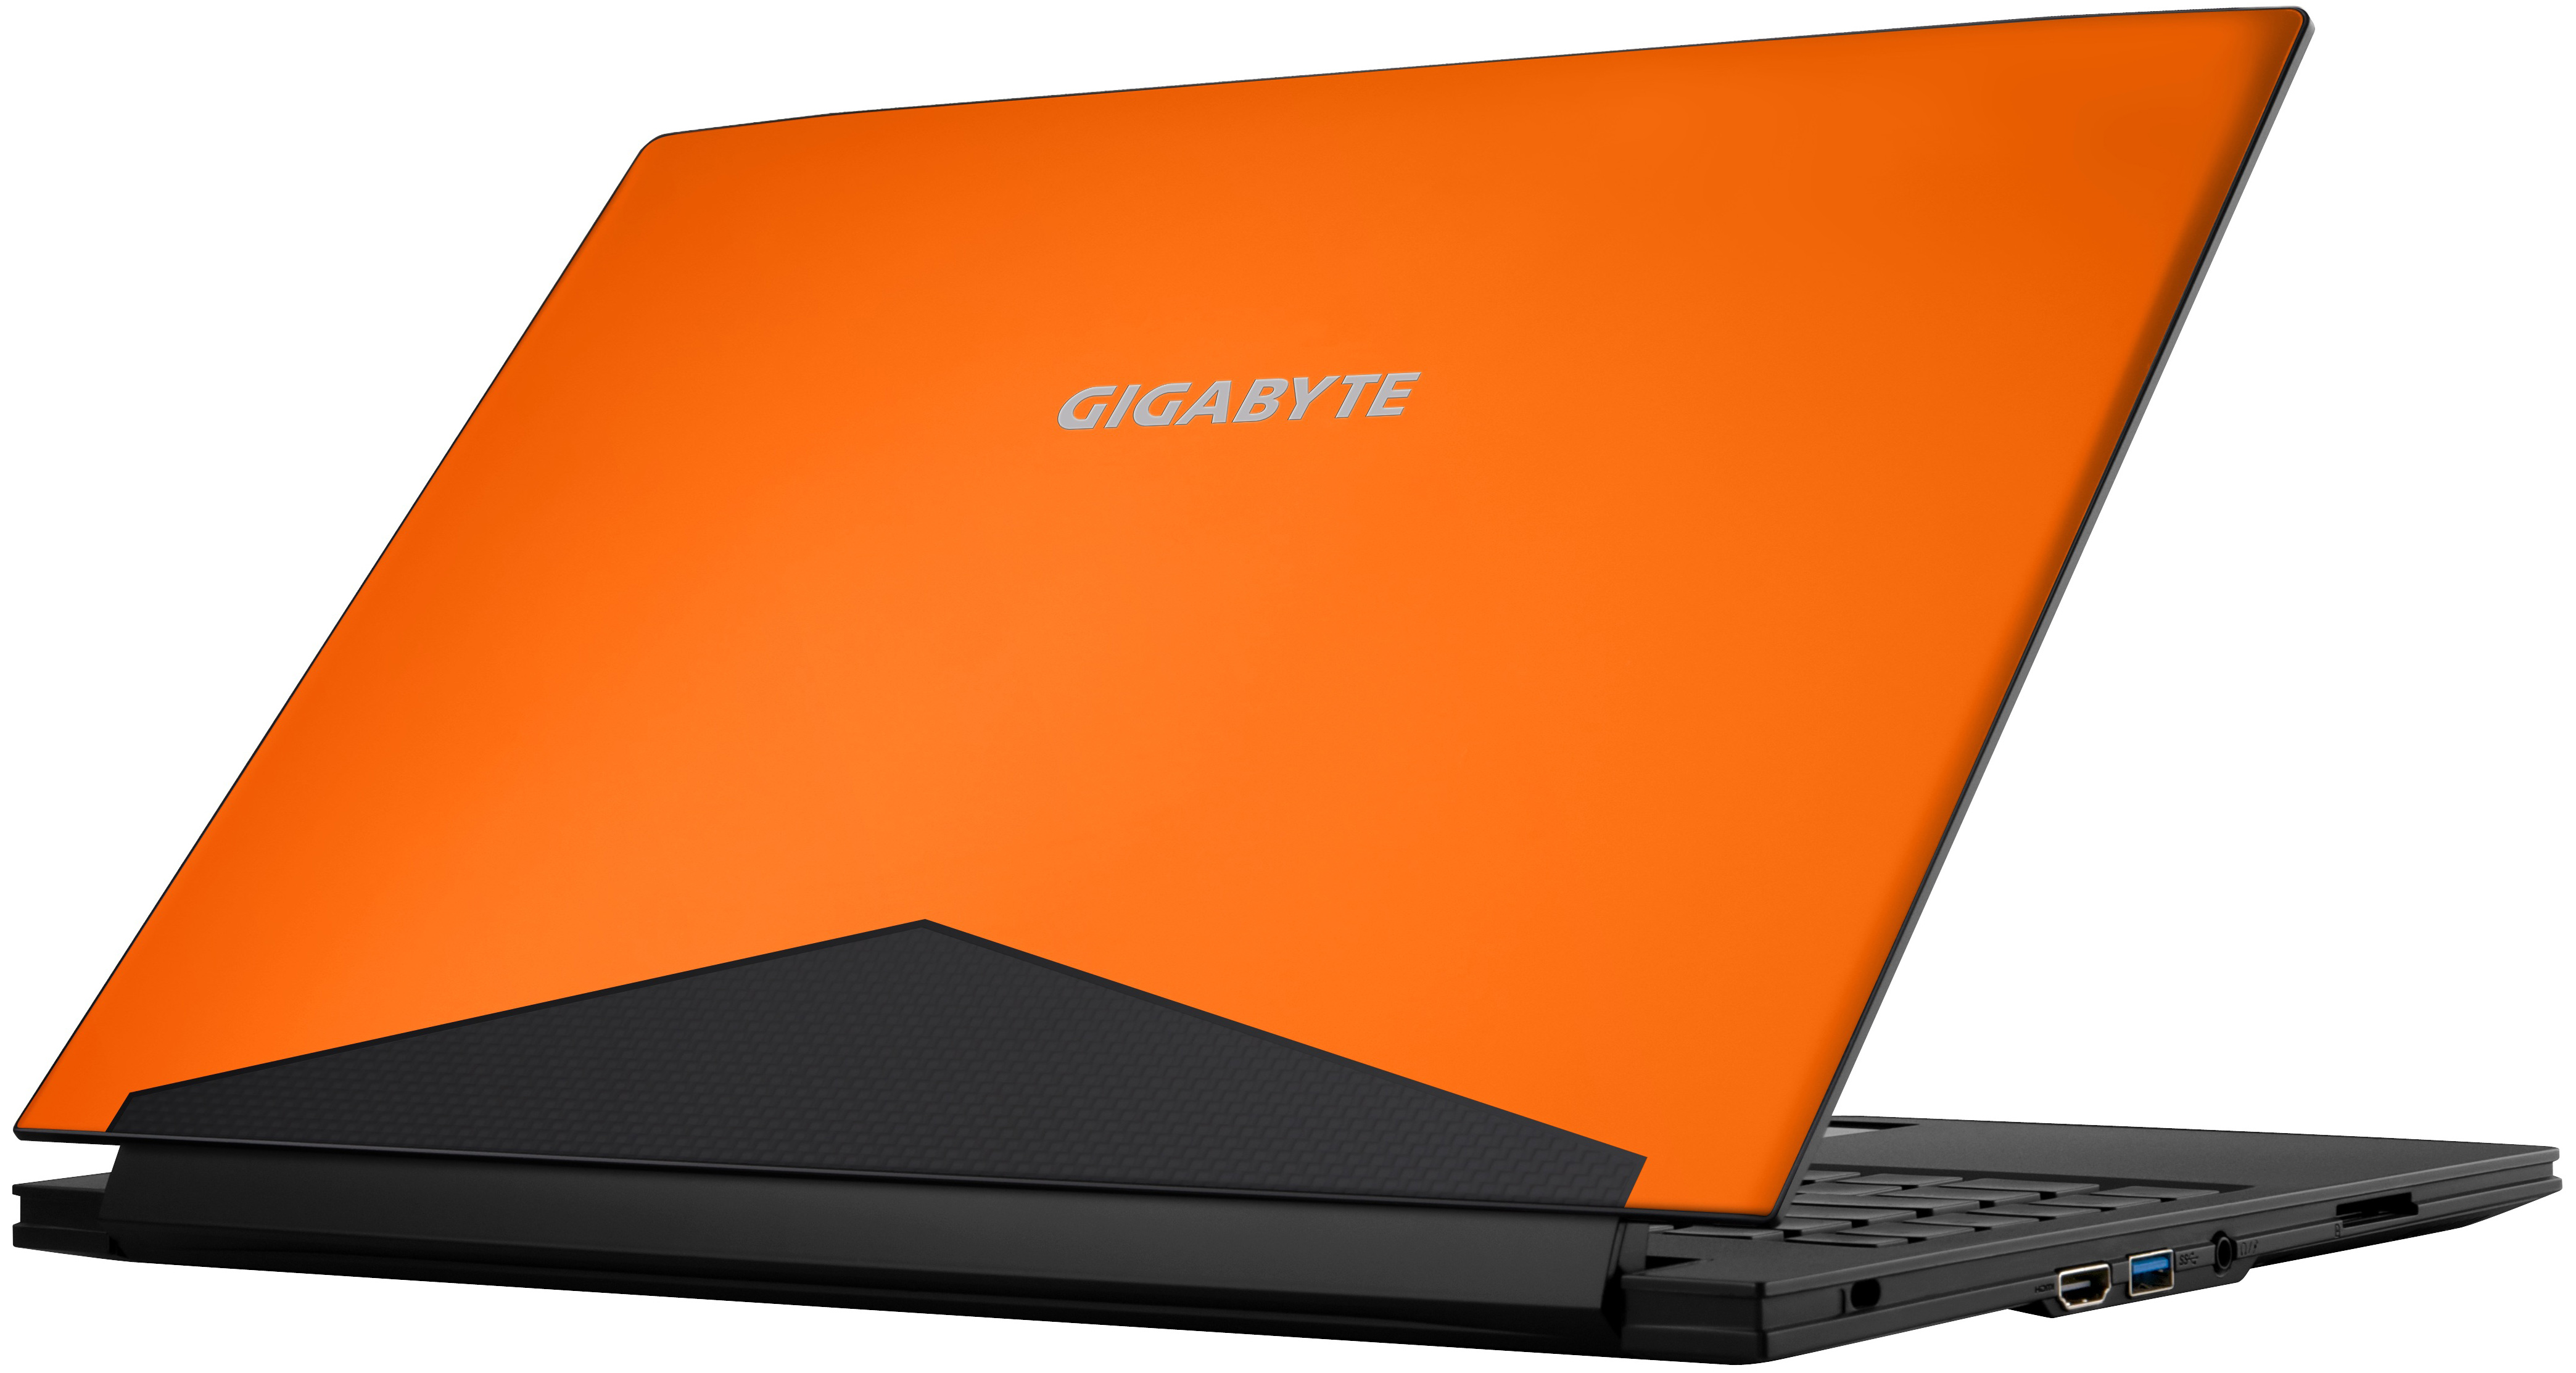 Gigabyte Aero 14 Thin Gaming Laptop With Nvidia Geforce Gtx 970m And 10 Hour Battery Life